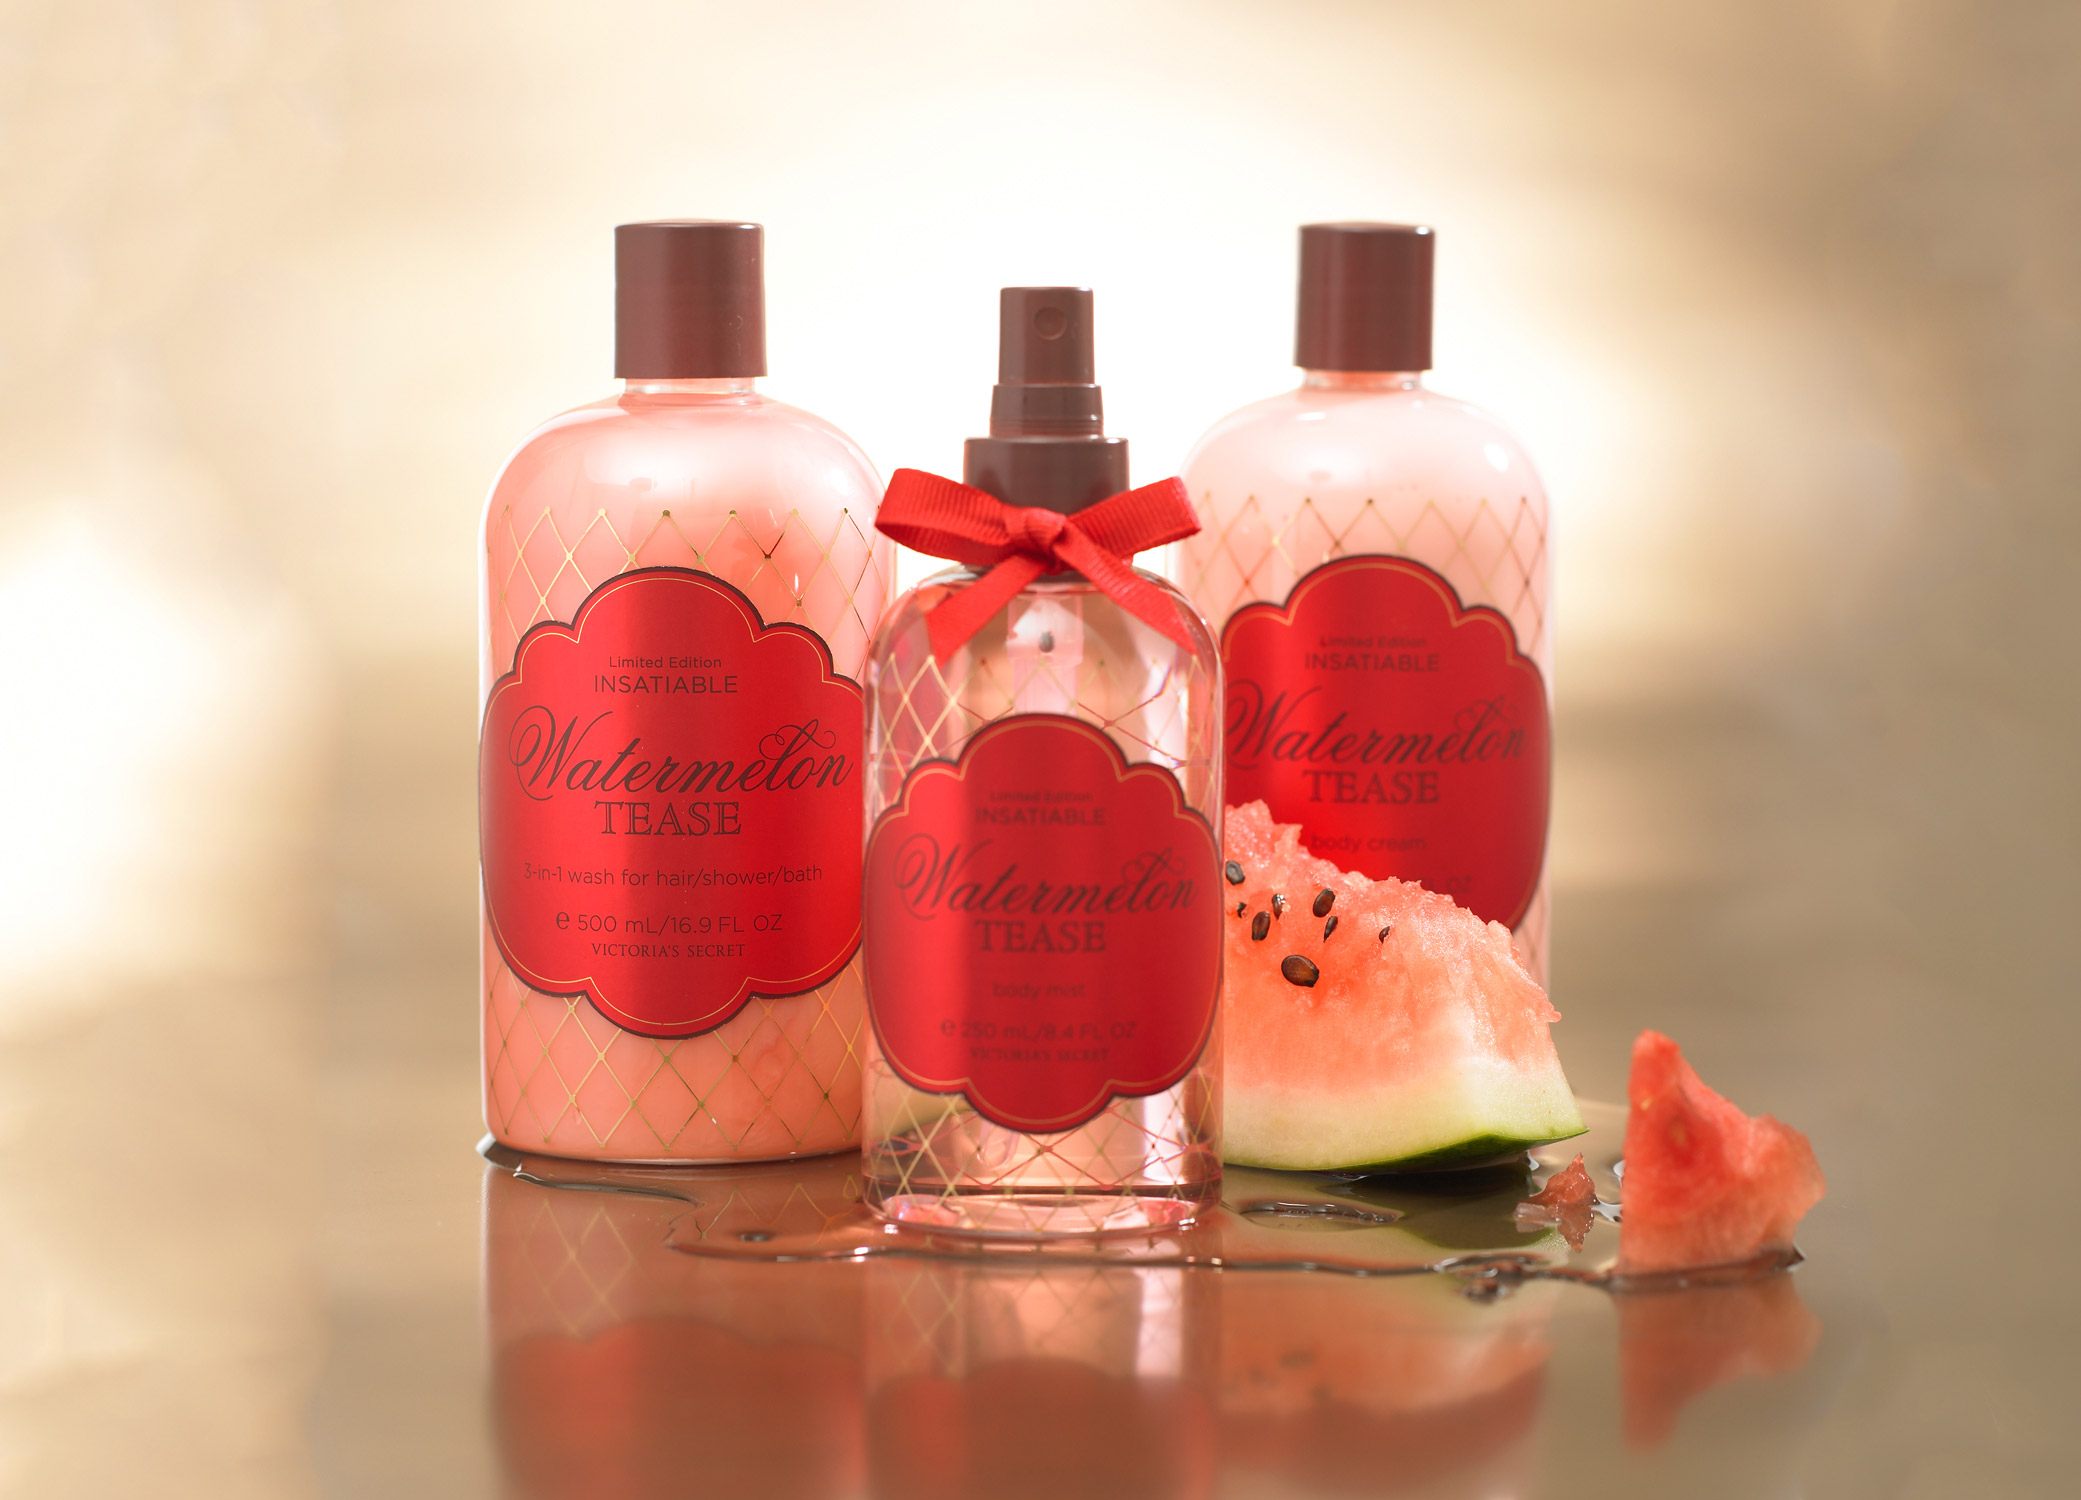 Body spray, wash, and cream packaging design for Victoria's Secret Insatiable. Watermelon Tease line with fishnet stocking pattern and red label.